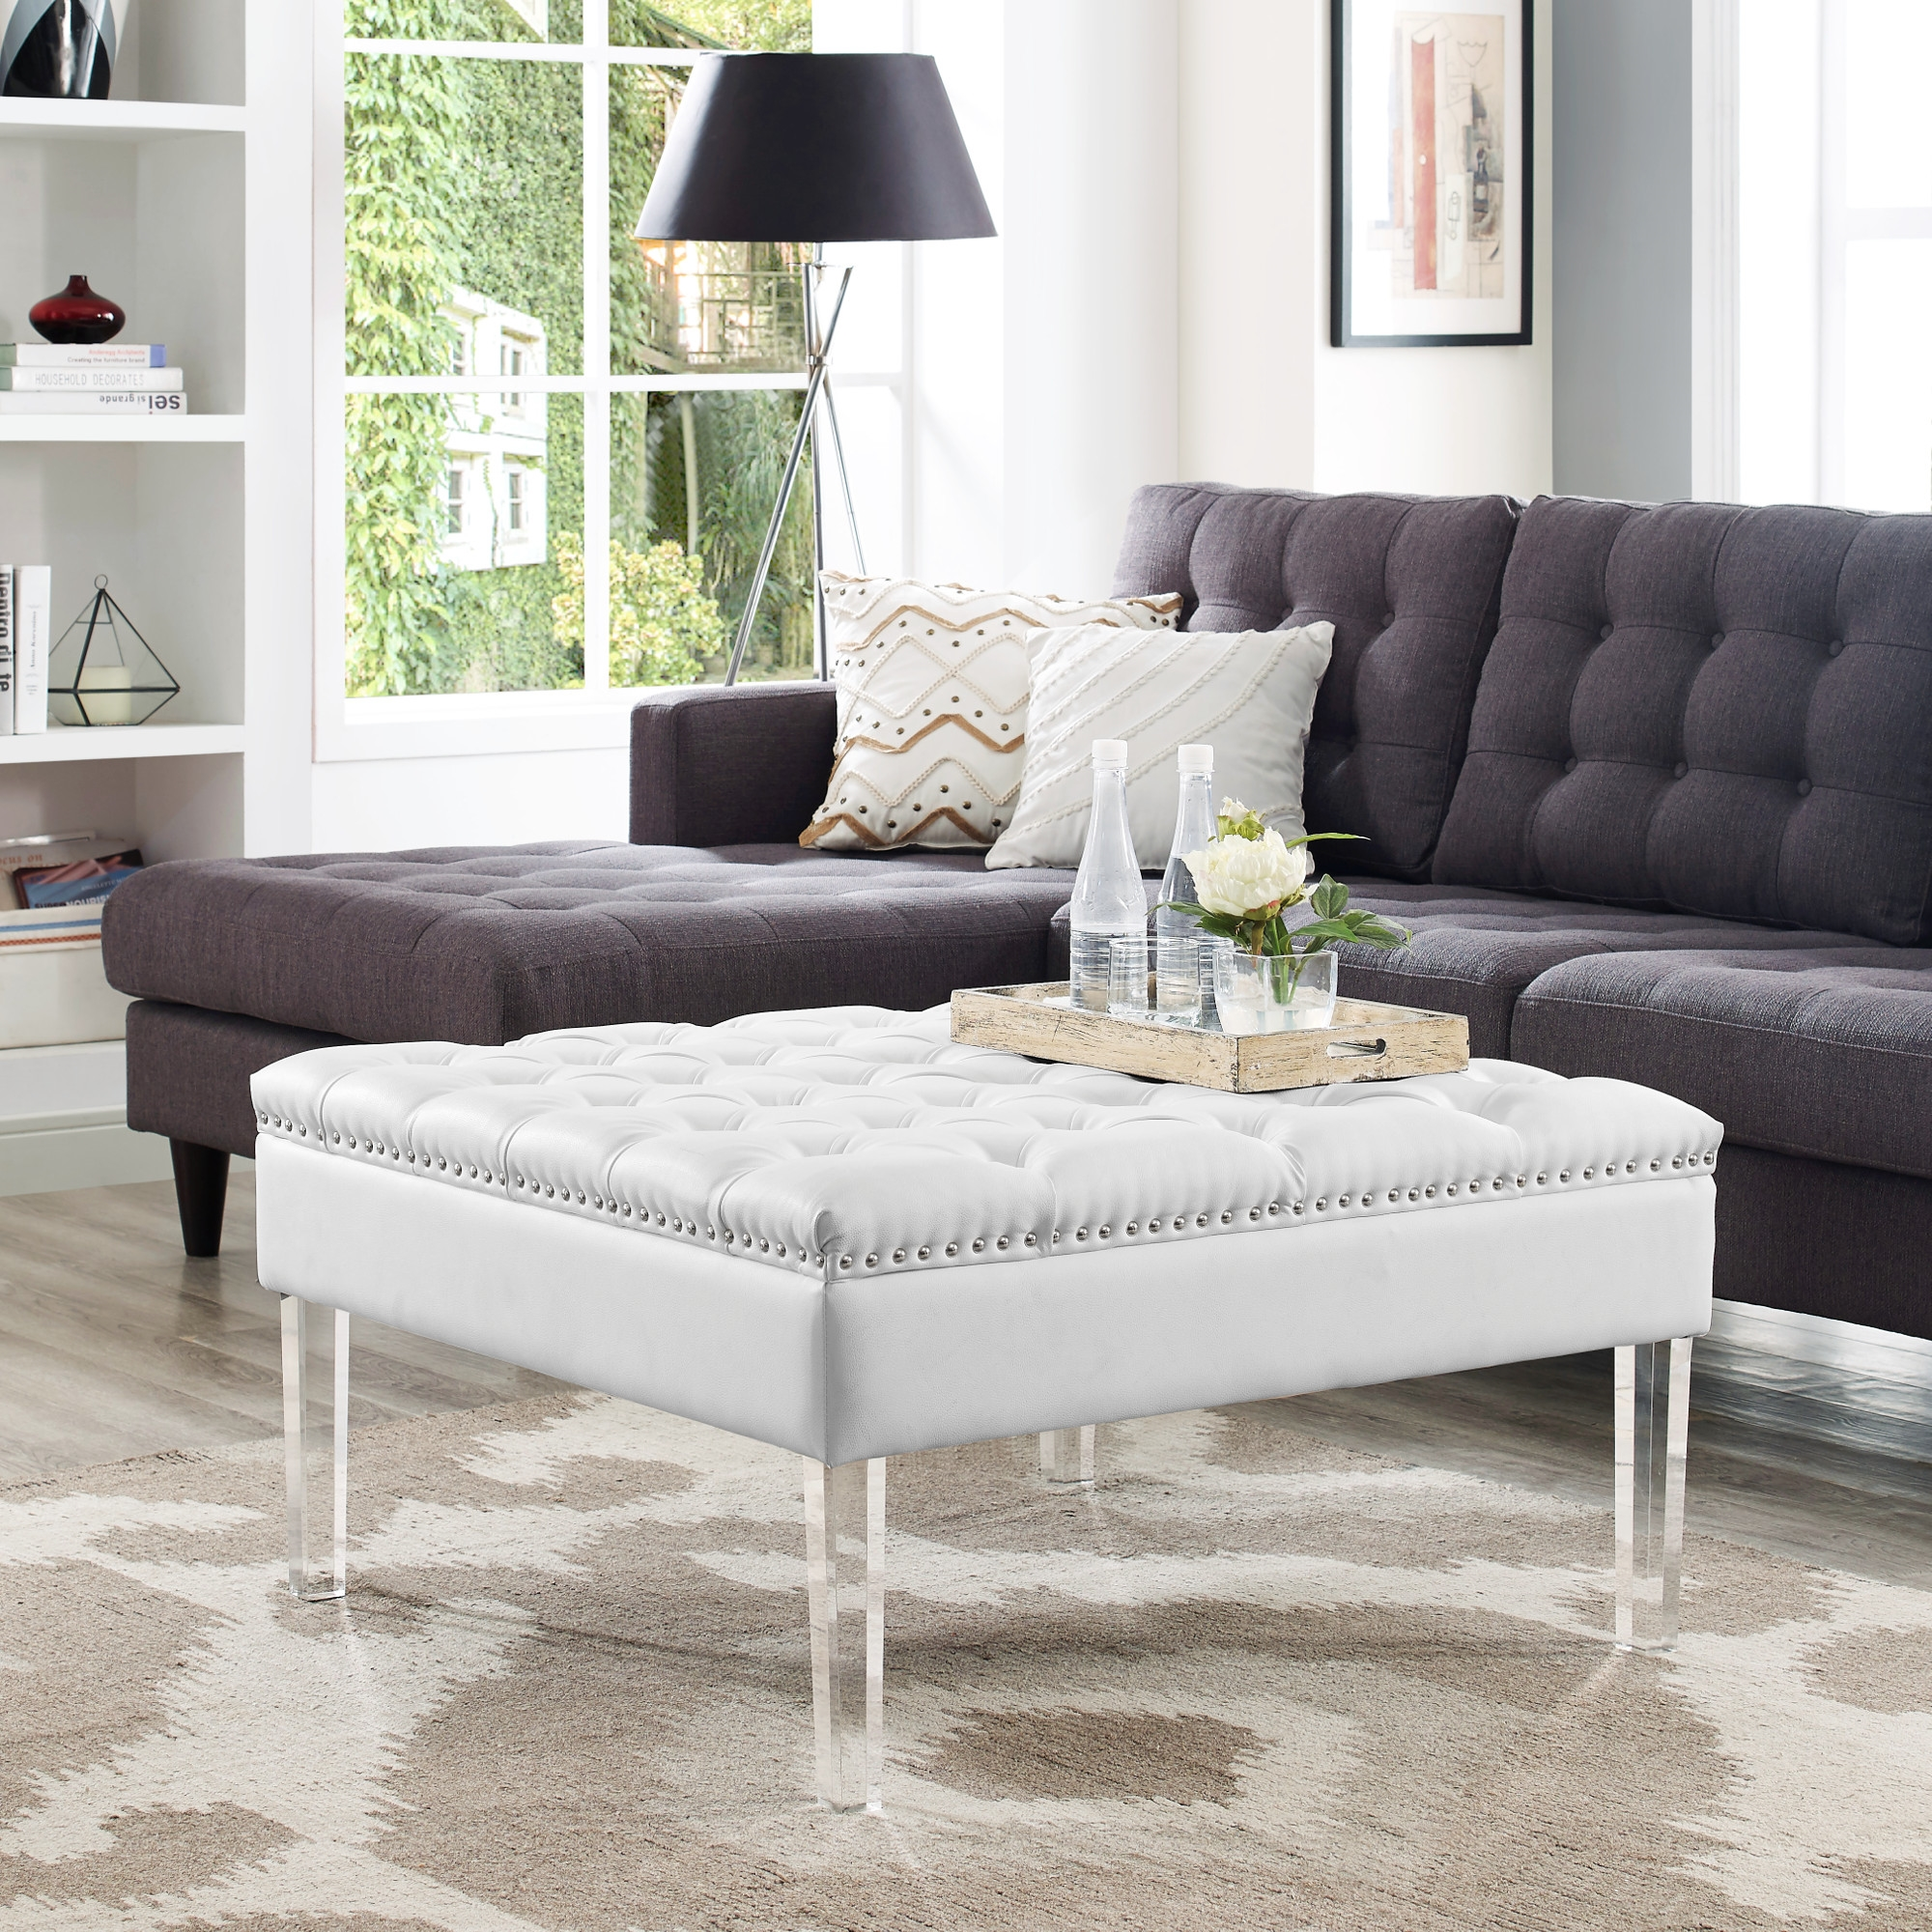 inspired home giulia cream faux leather ottoman cocktail coffee table square tufted cream white